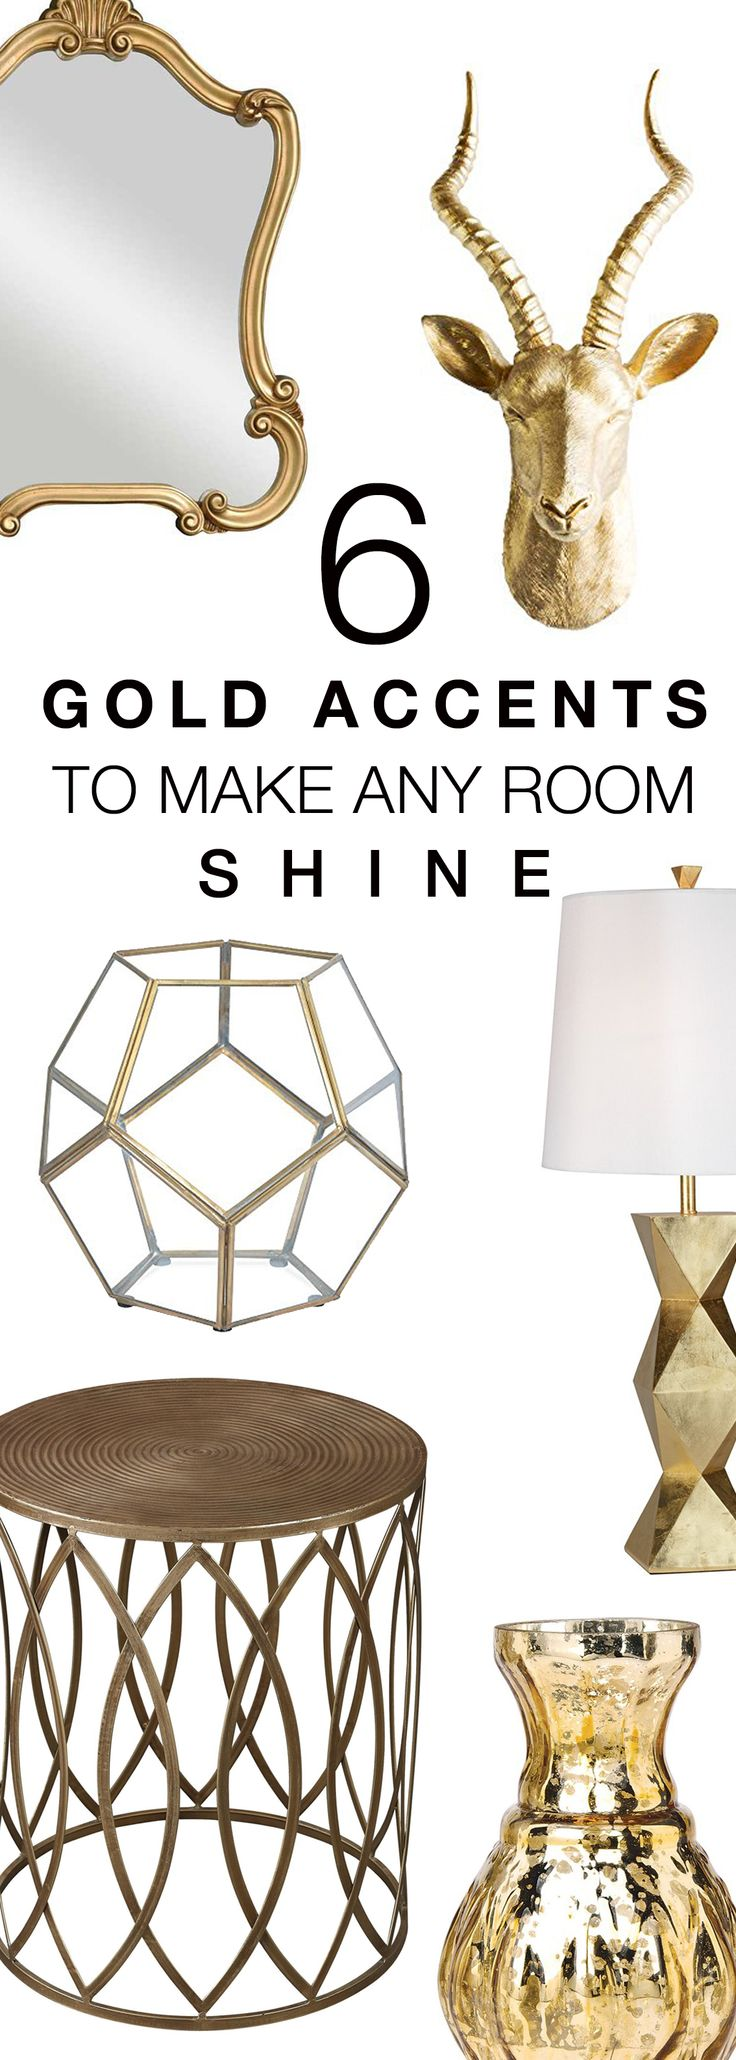 205 best for the living room images on pinterest apartment ideas gold accents to make any room shine gold home decor accessories